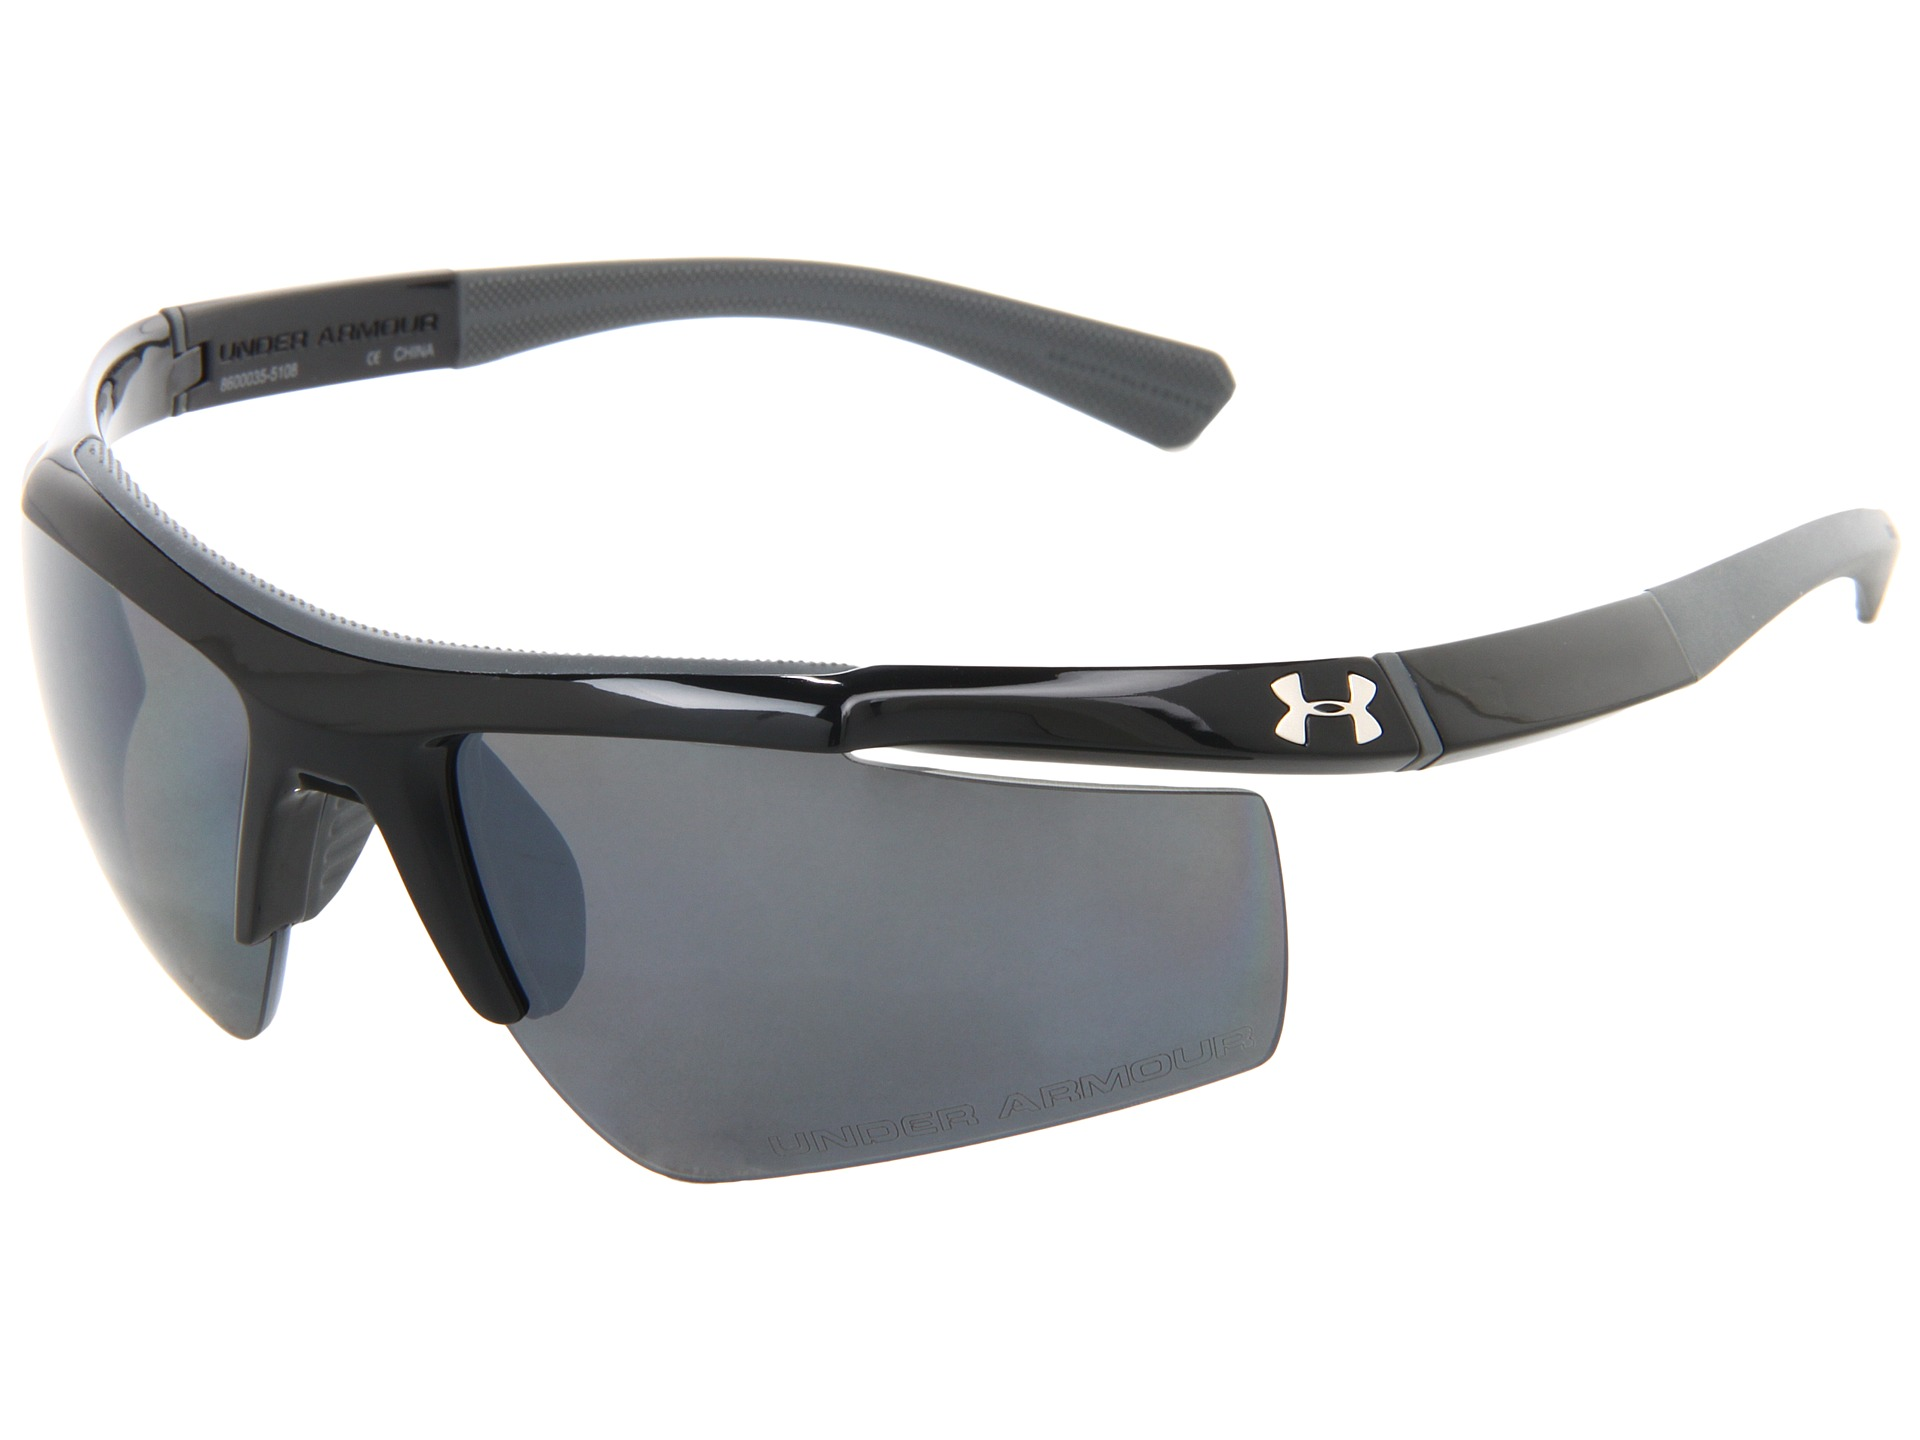 78a000ea0f72 Under Armour Rumble Polarized Sunglasses | www.tapdance.org